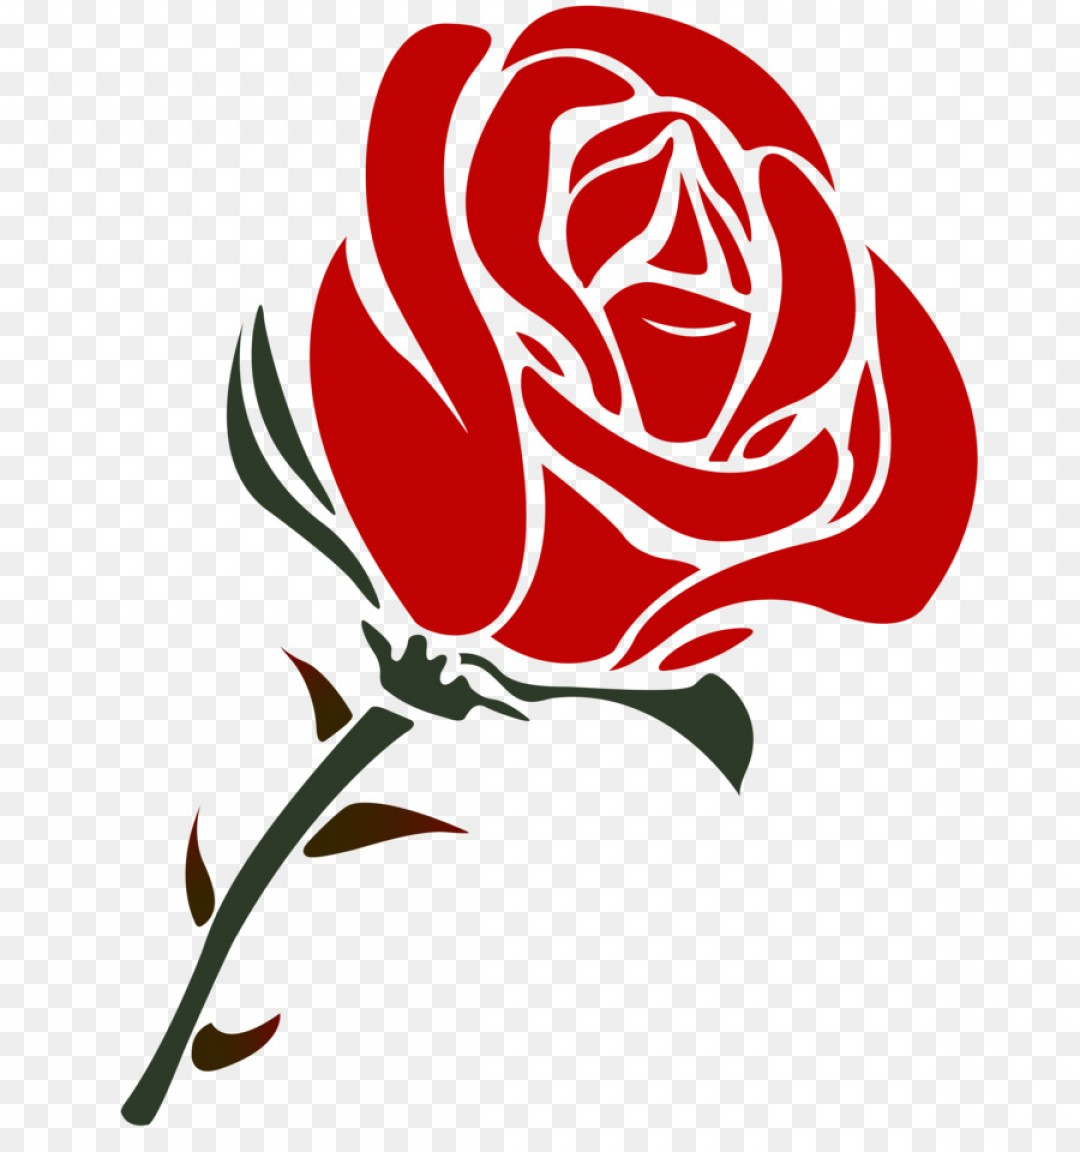 Png Rose Scalable Vector Graphics Valentines Day Clip.